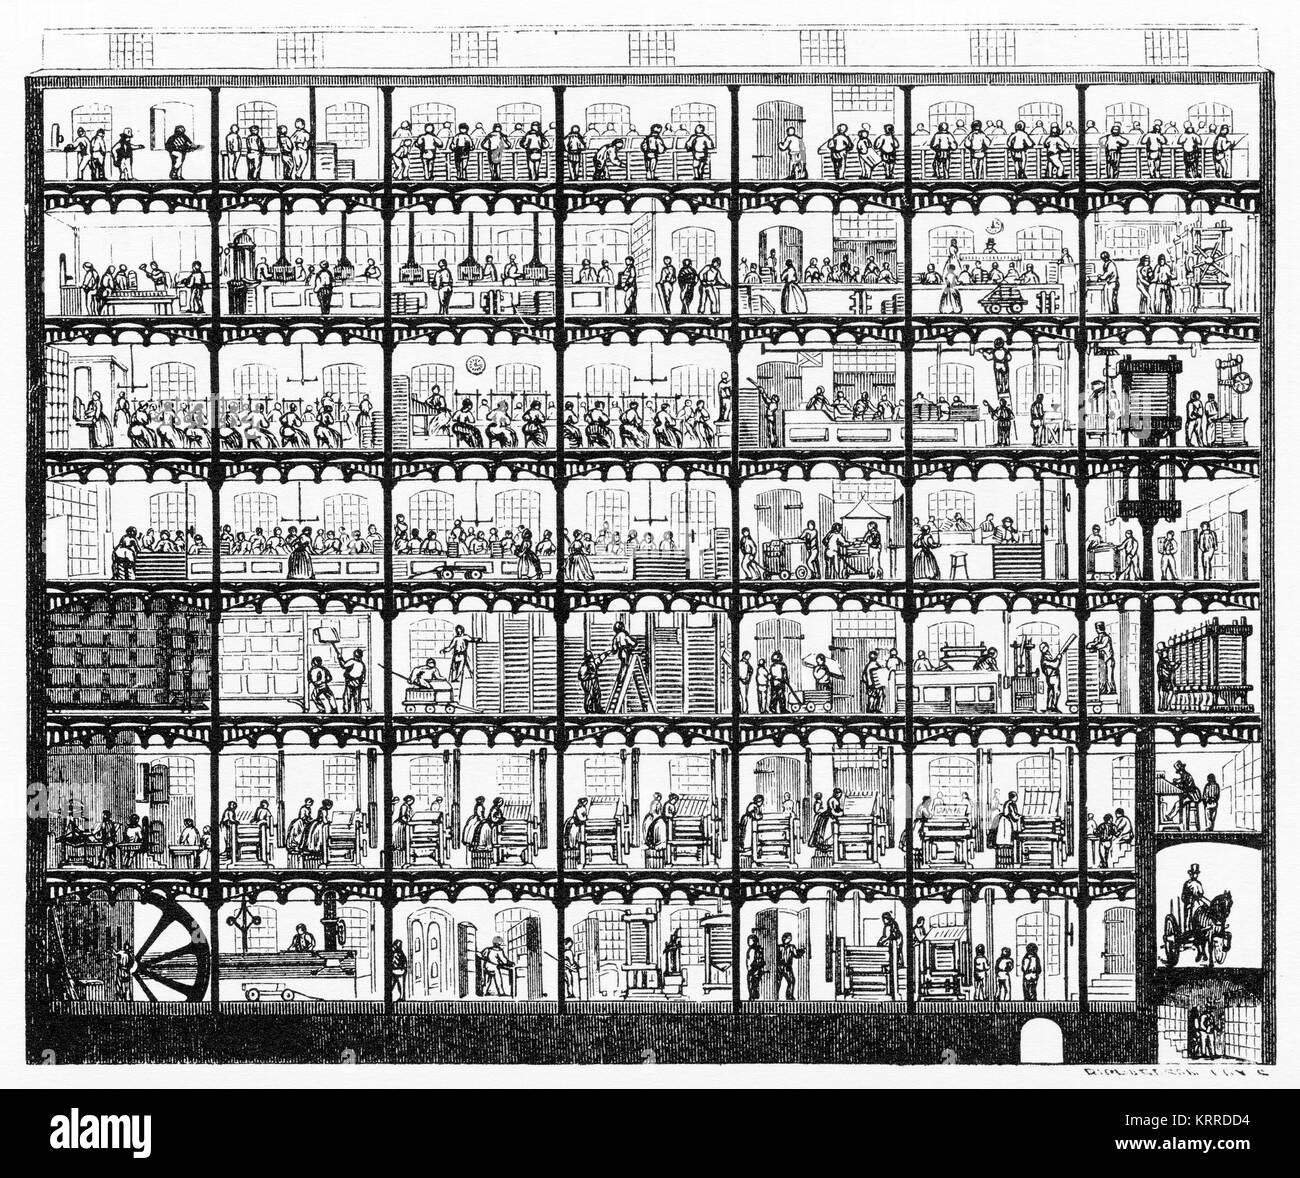 Engraving of a cross section through the building of a printing company in New York, showing the various stages of printing and finishing. Stock Photo